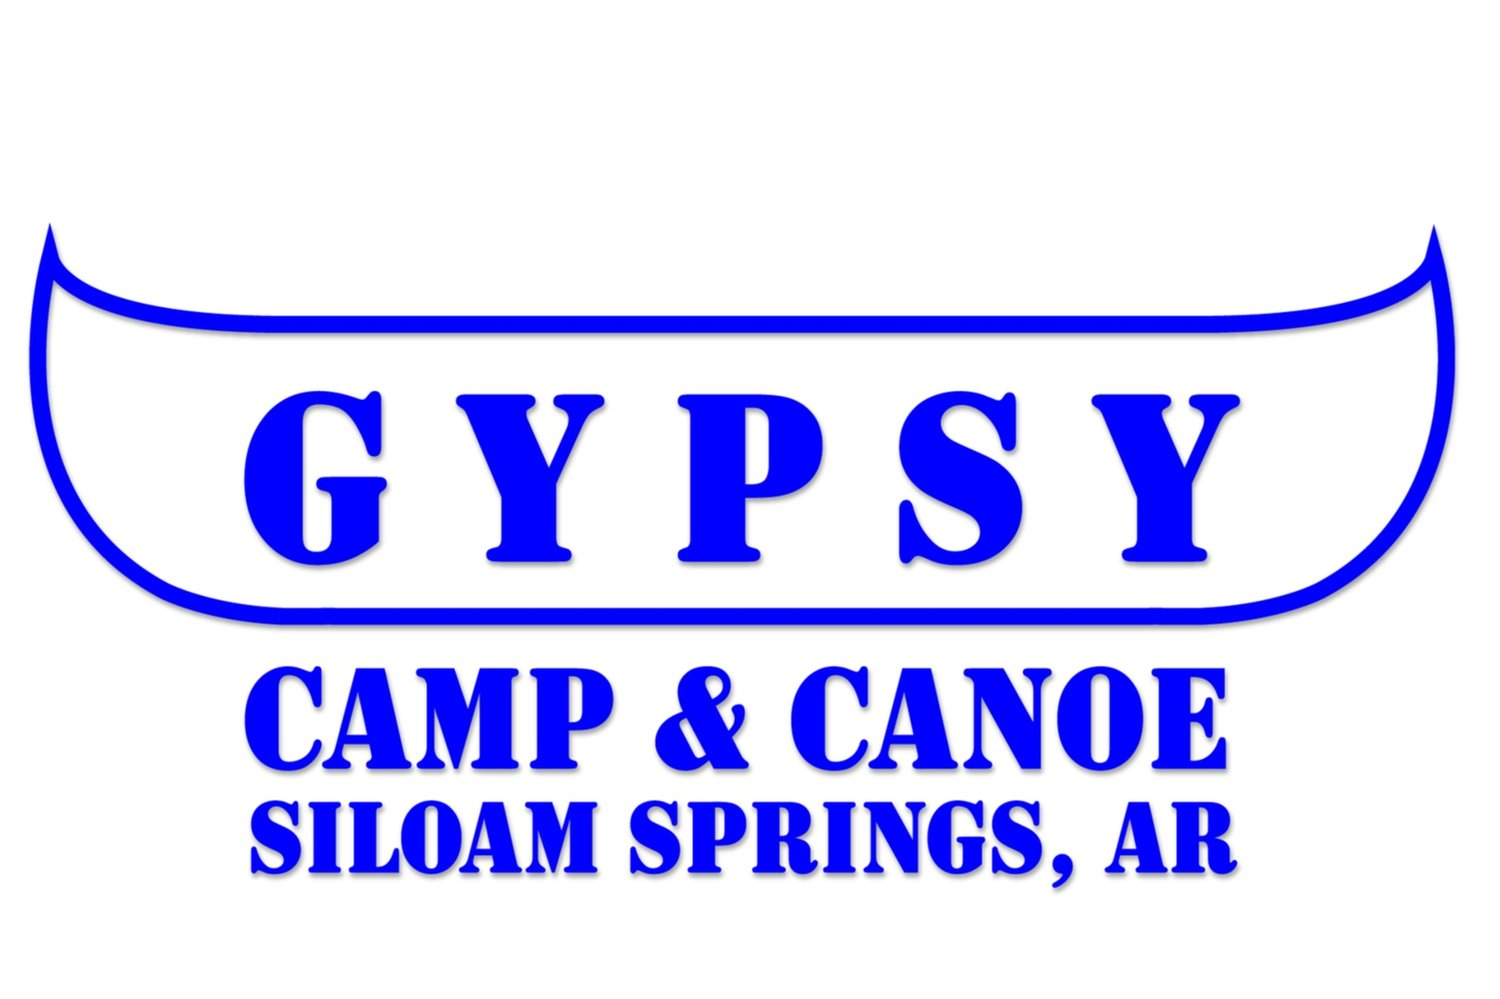 Gypsy Camp & Canoe